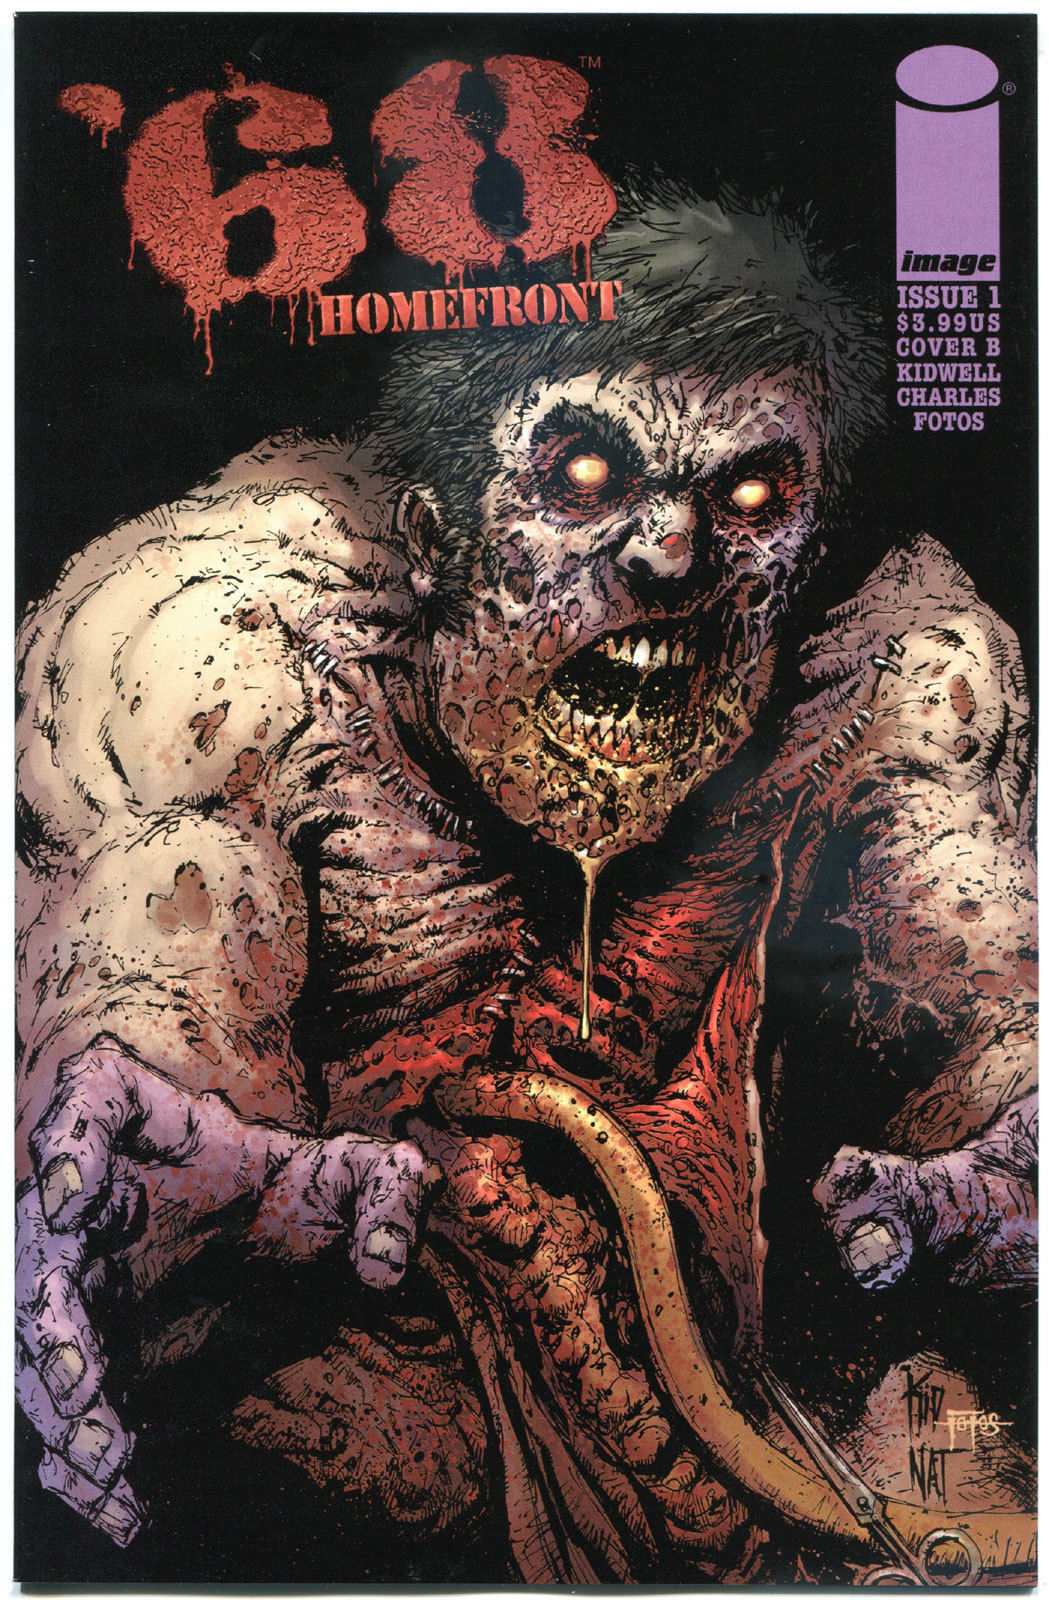 '68 HOMEFRONT #1 B, NM,1st Print, Zombie, Walking Dead,2014,more Horror in store